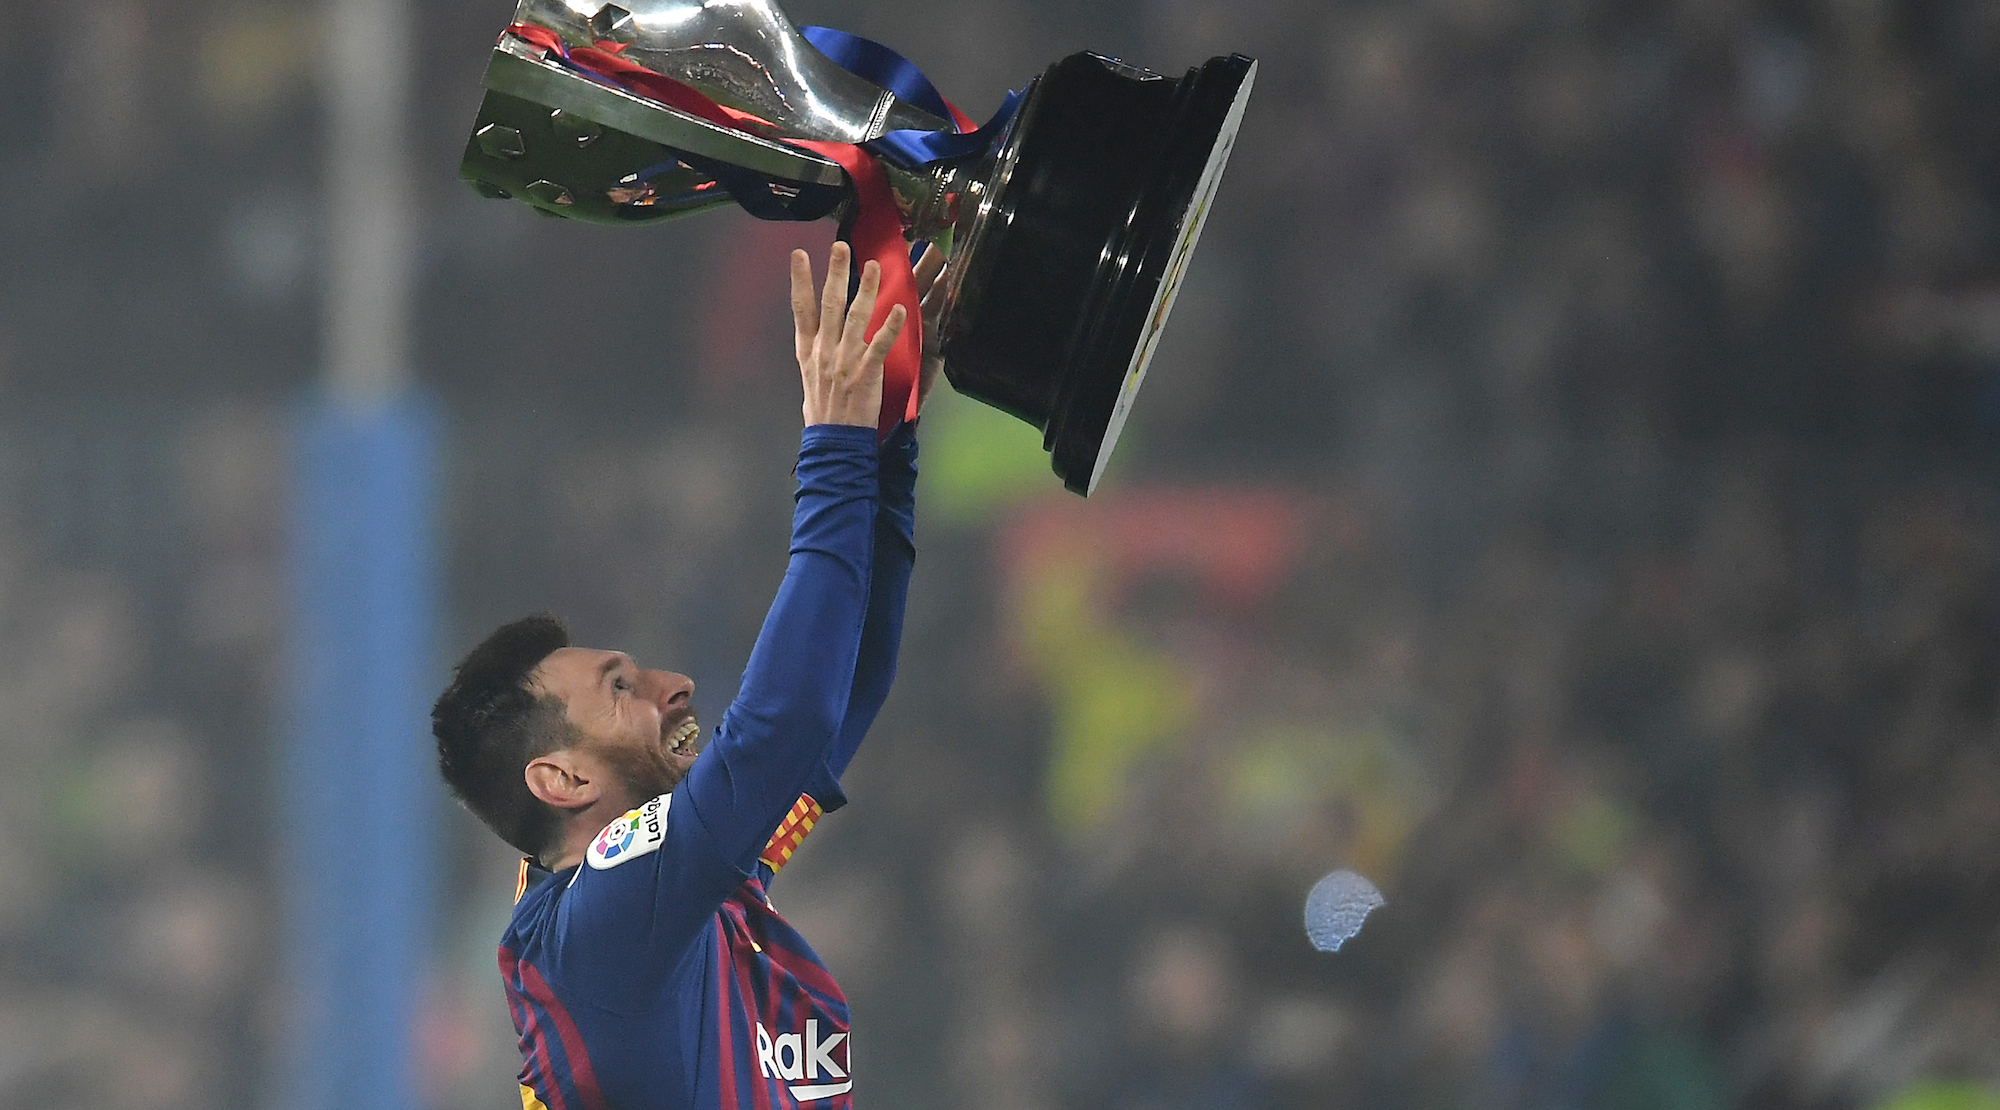 Lionel Messi of FC Barcelona celebrates with the La Liga trophy following his team's victory in the La Liga match between FC Barcelona and Levante UD at Camp Nou on April 27, 2019 in Barcelona, Spain. (Photo by David Ramos/Getty Images)